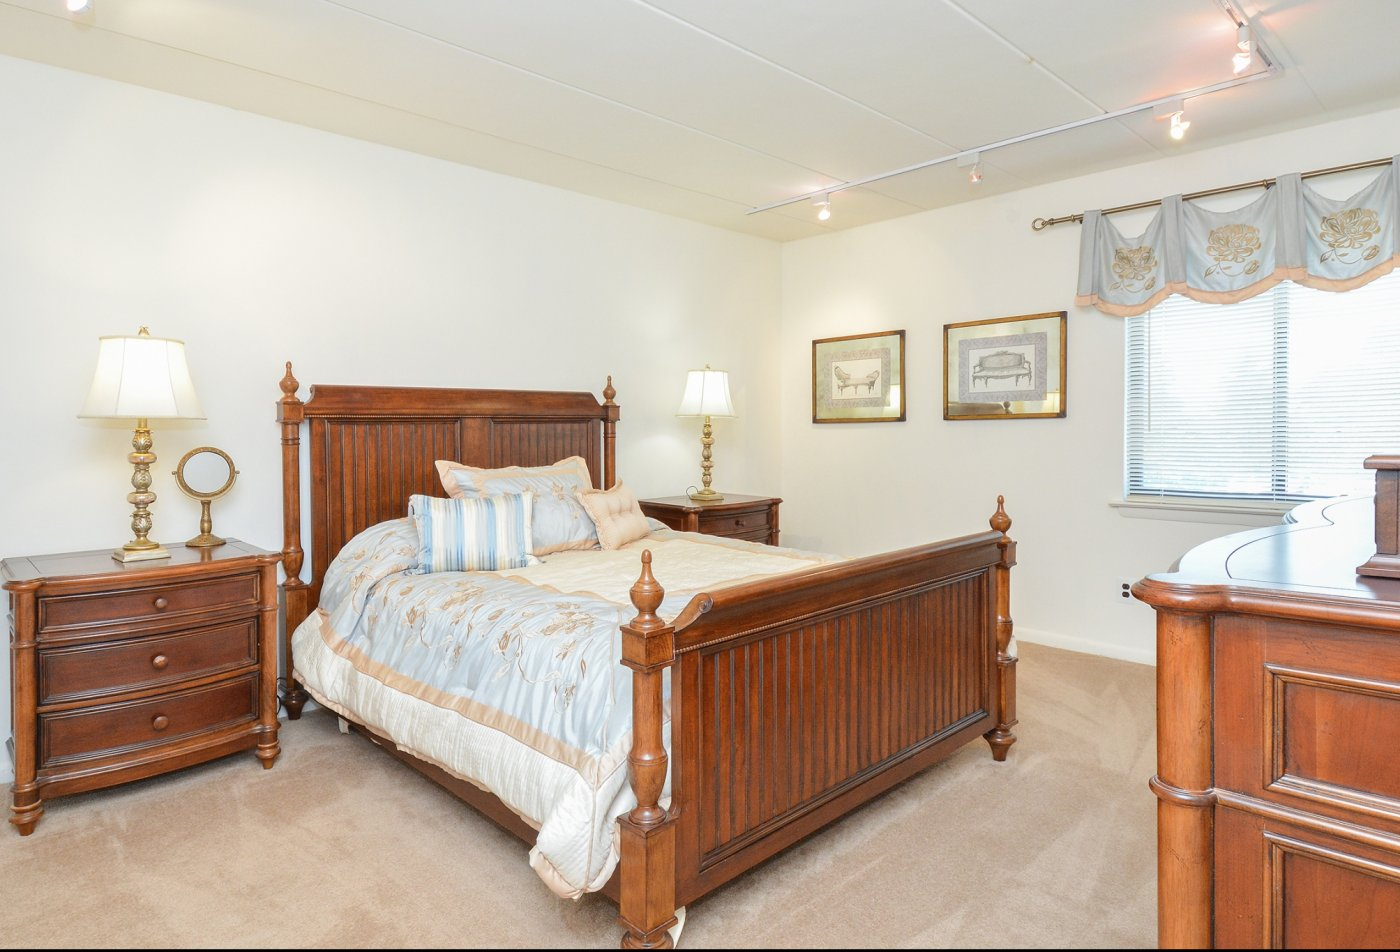 Spacious Master Bedroom | Apartments Homes for rent in Wilmington, DE | Fairway Park Apartments & Townhomes